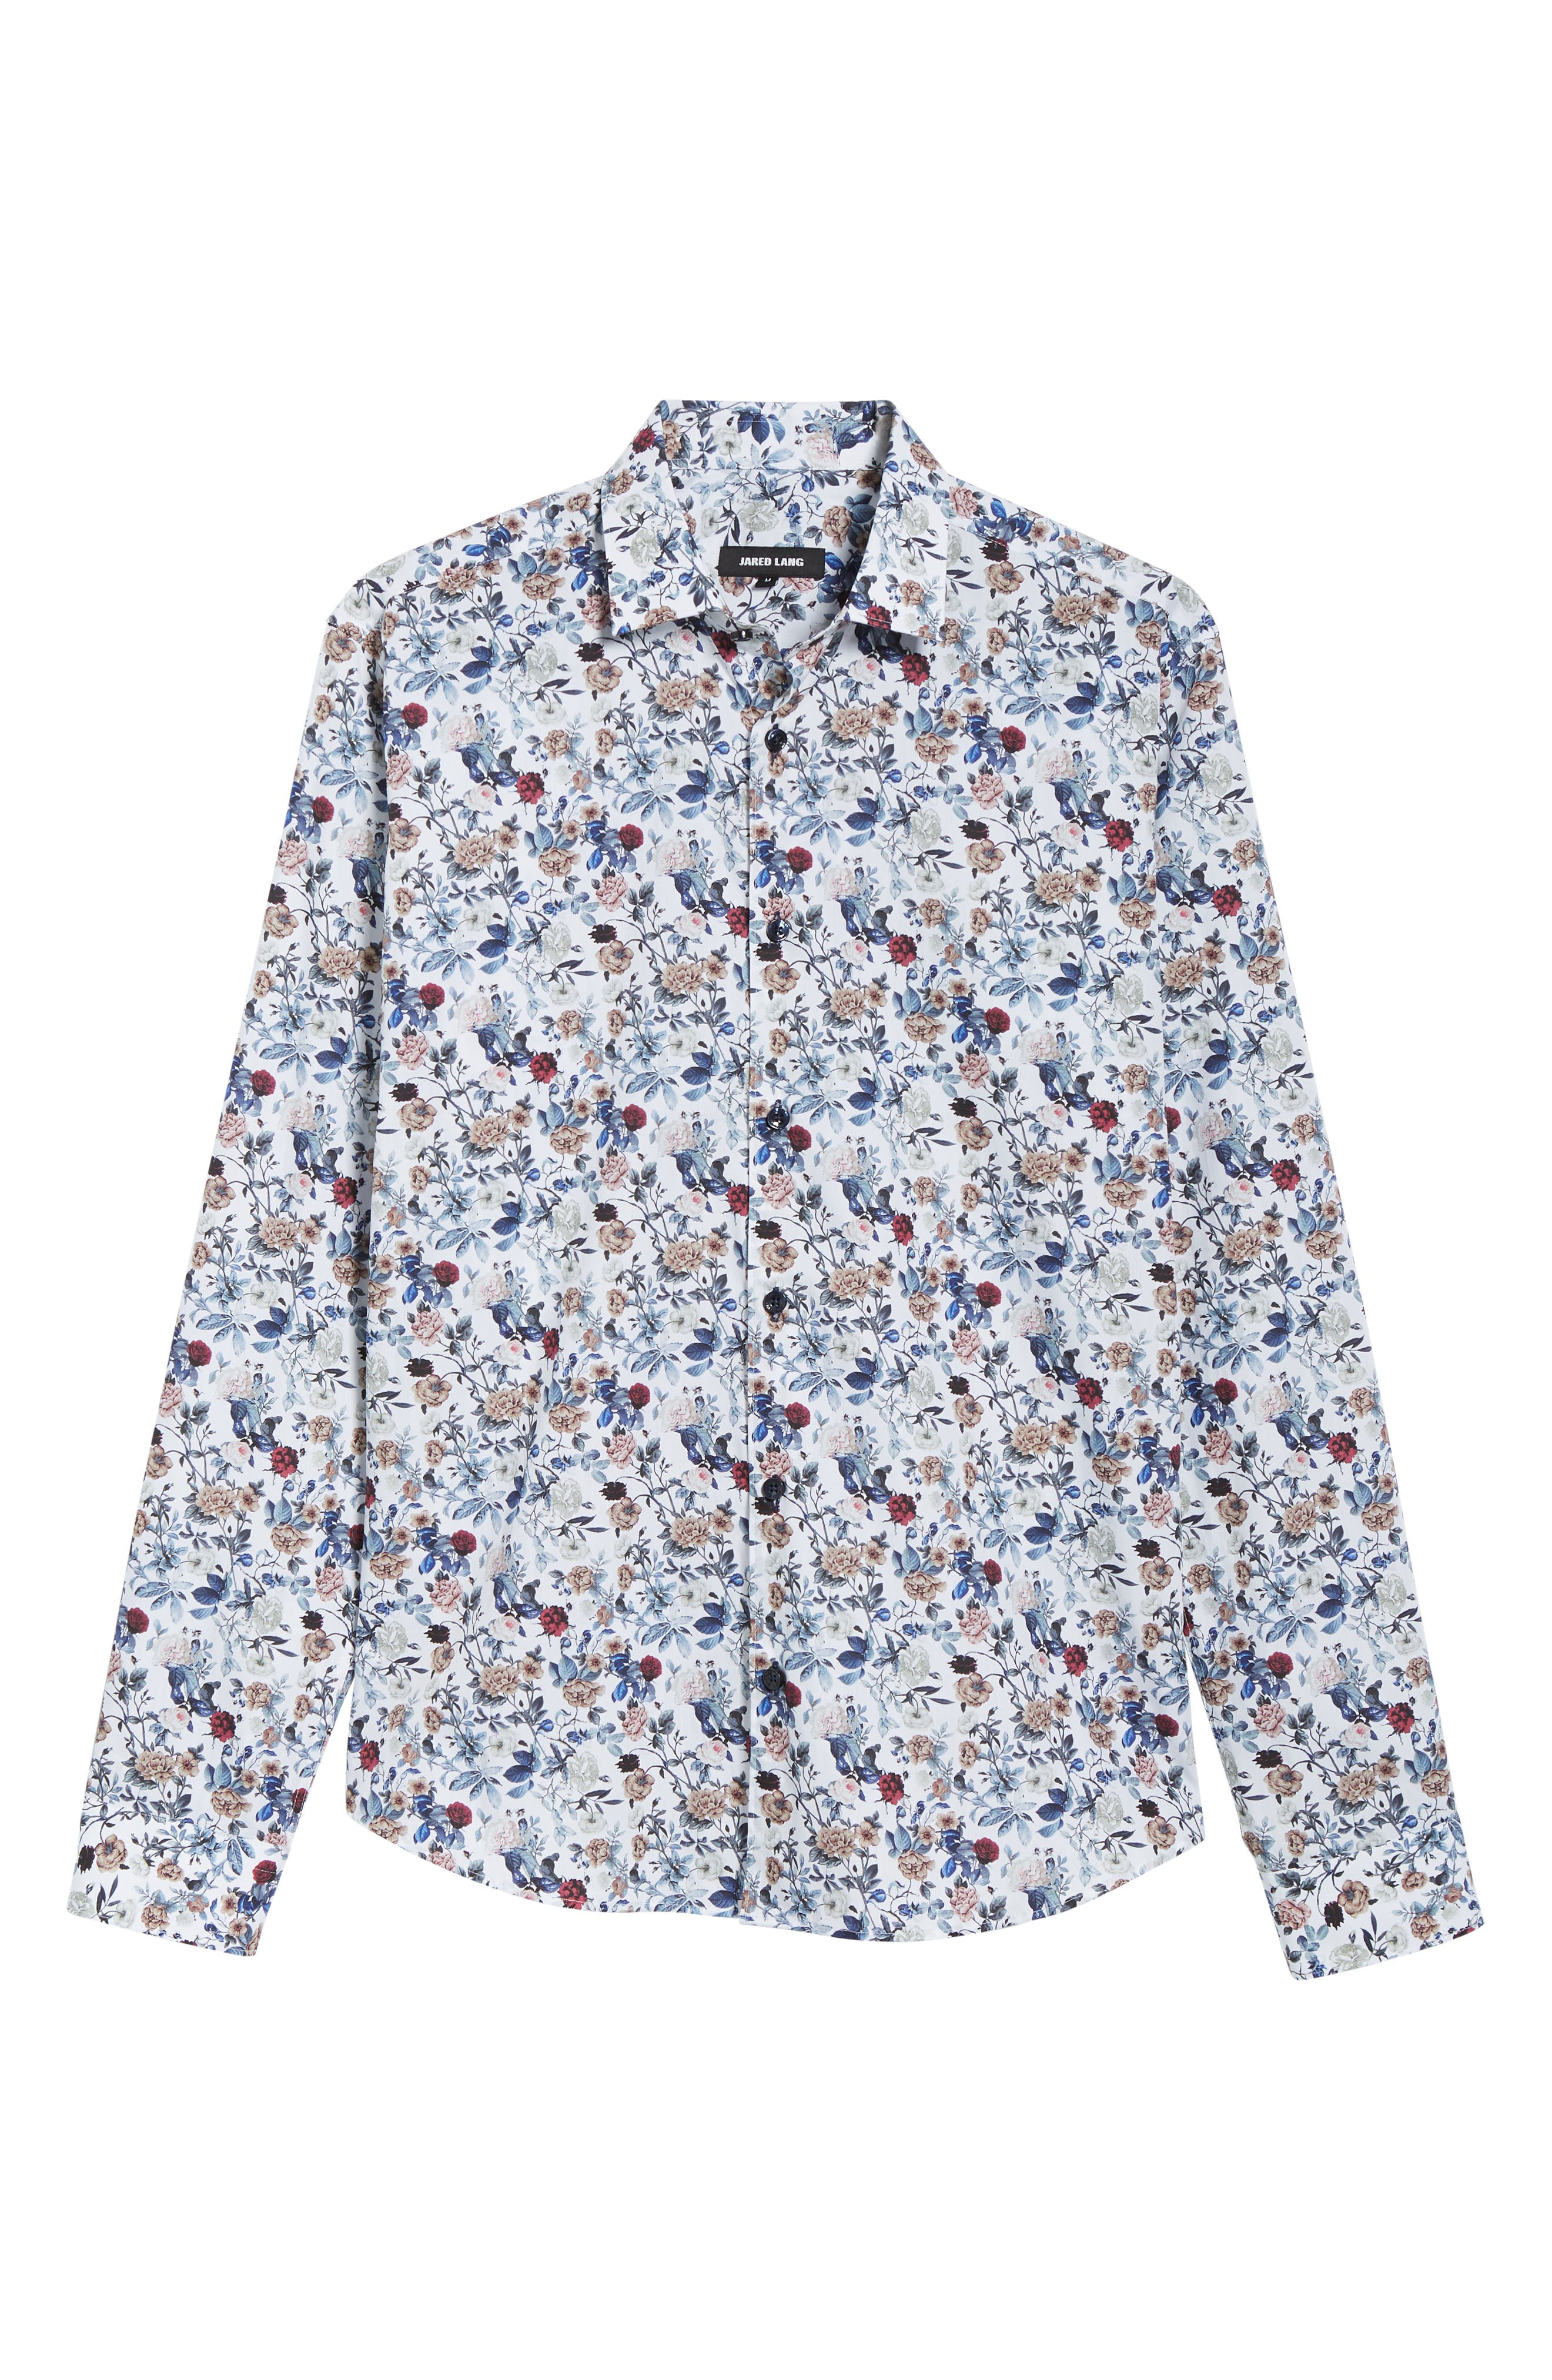 Floral Sport Shirt,                             Alternate thumbnail 5, color,                             White Navy Print